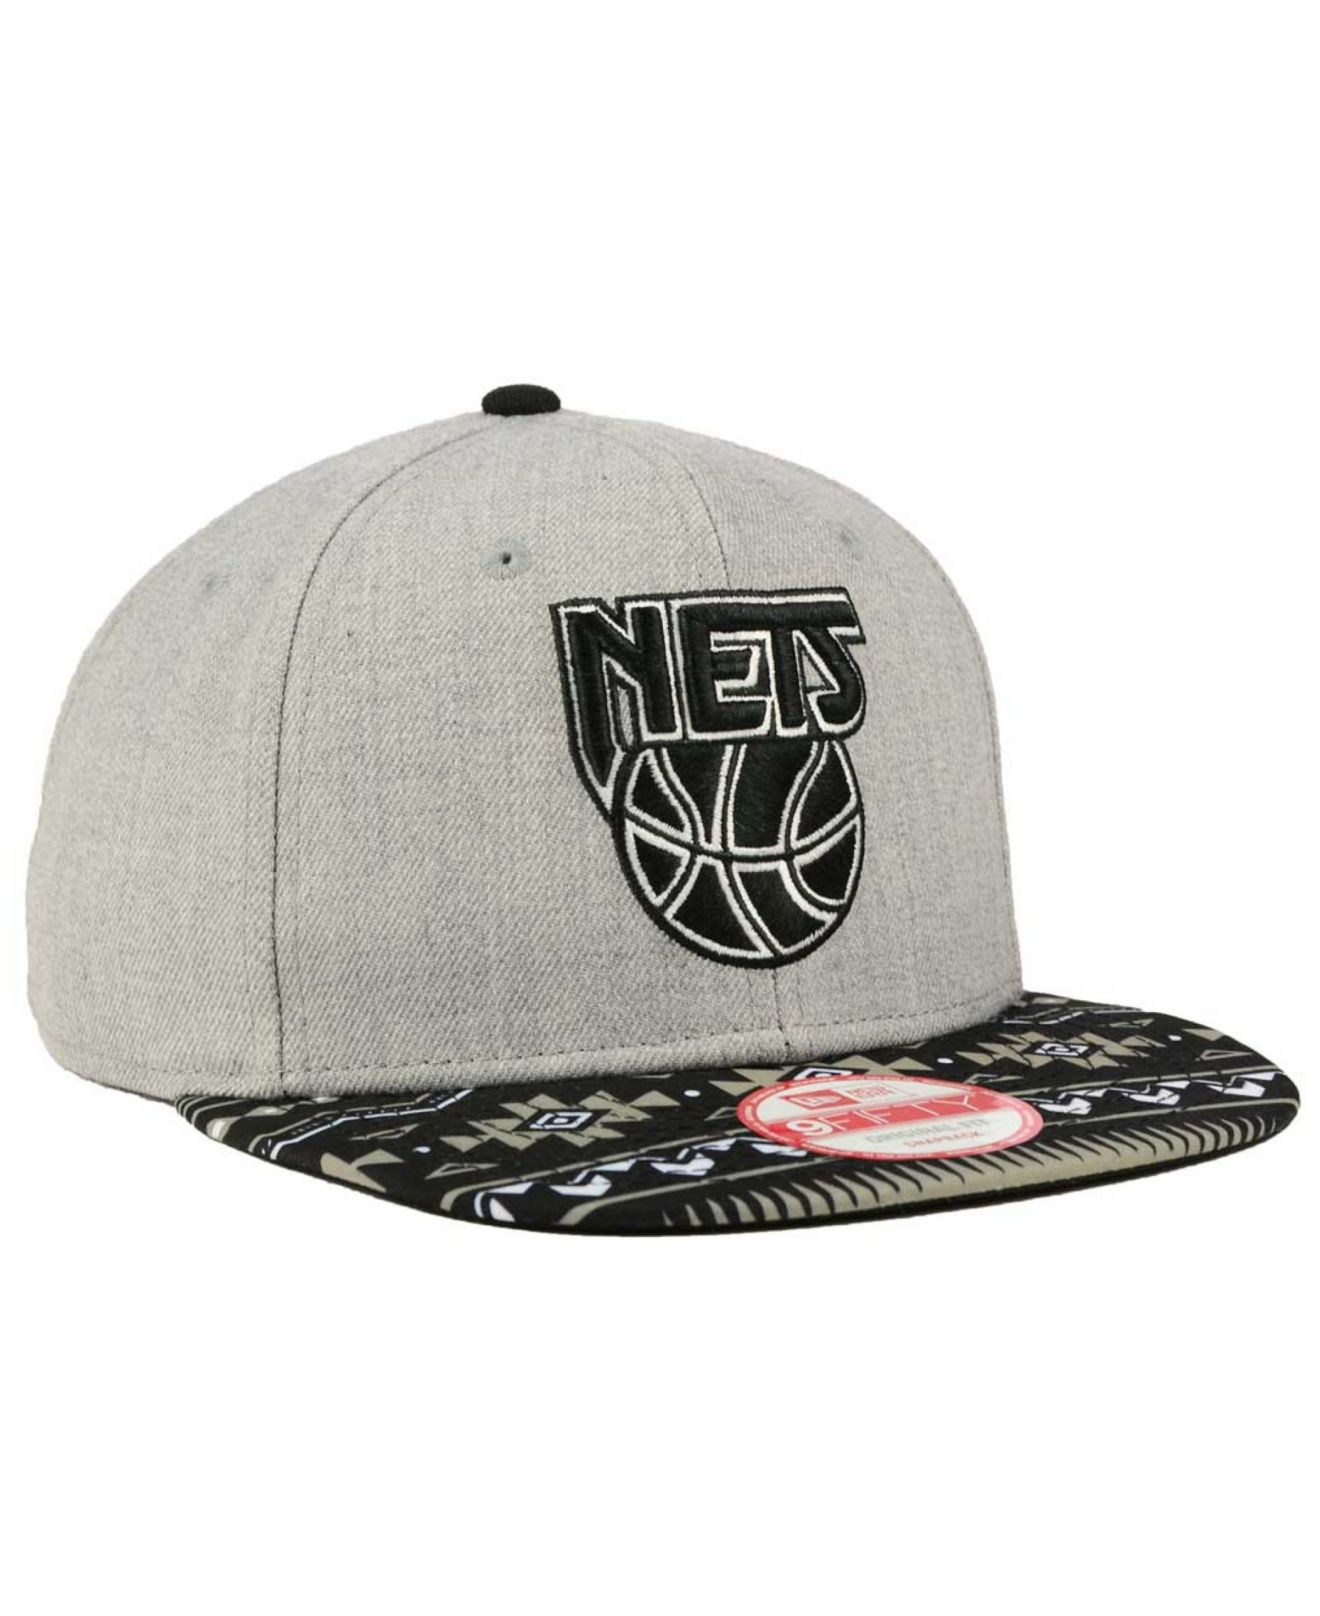 15d300595d8 Lyst - Ktz New Jersey Nets Neon Mashup 9fifty Snapback Cap in Gray ...